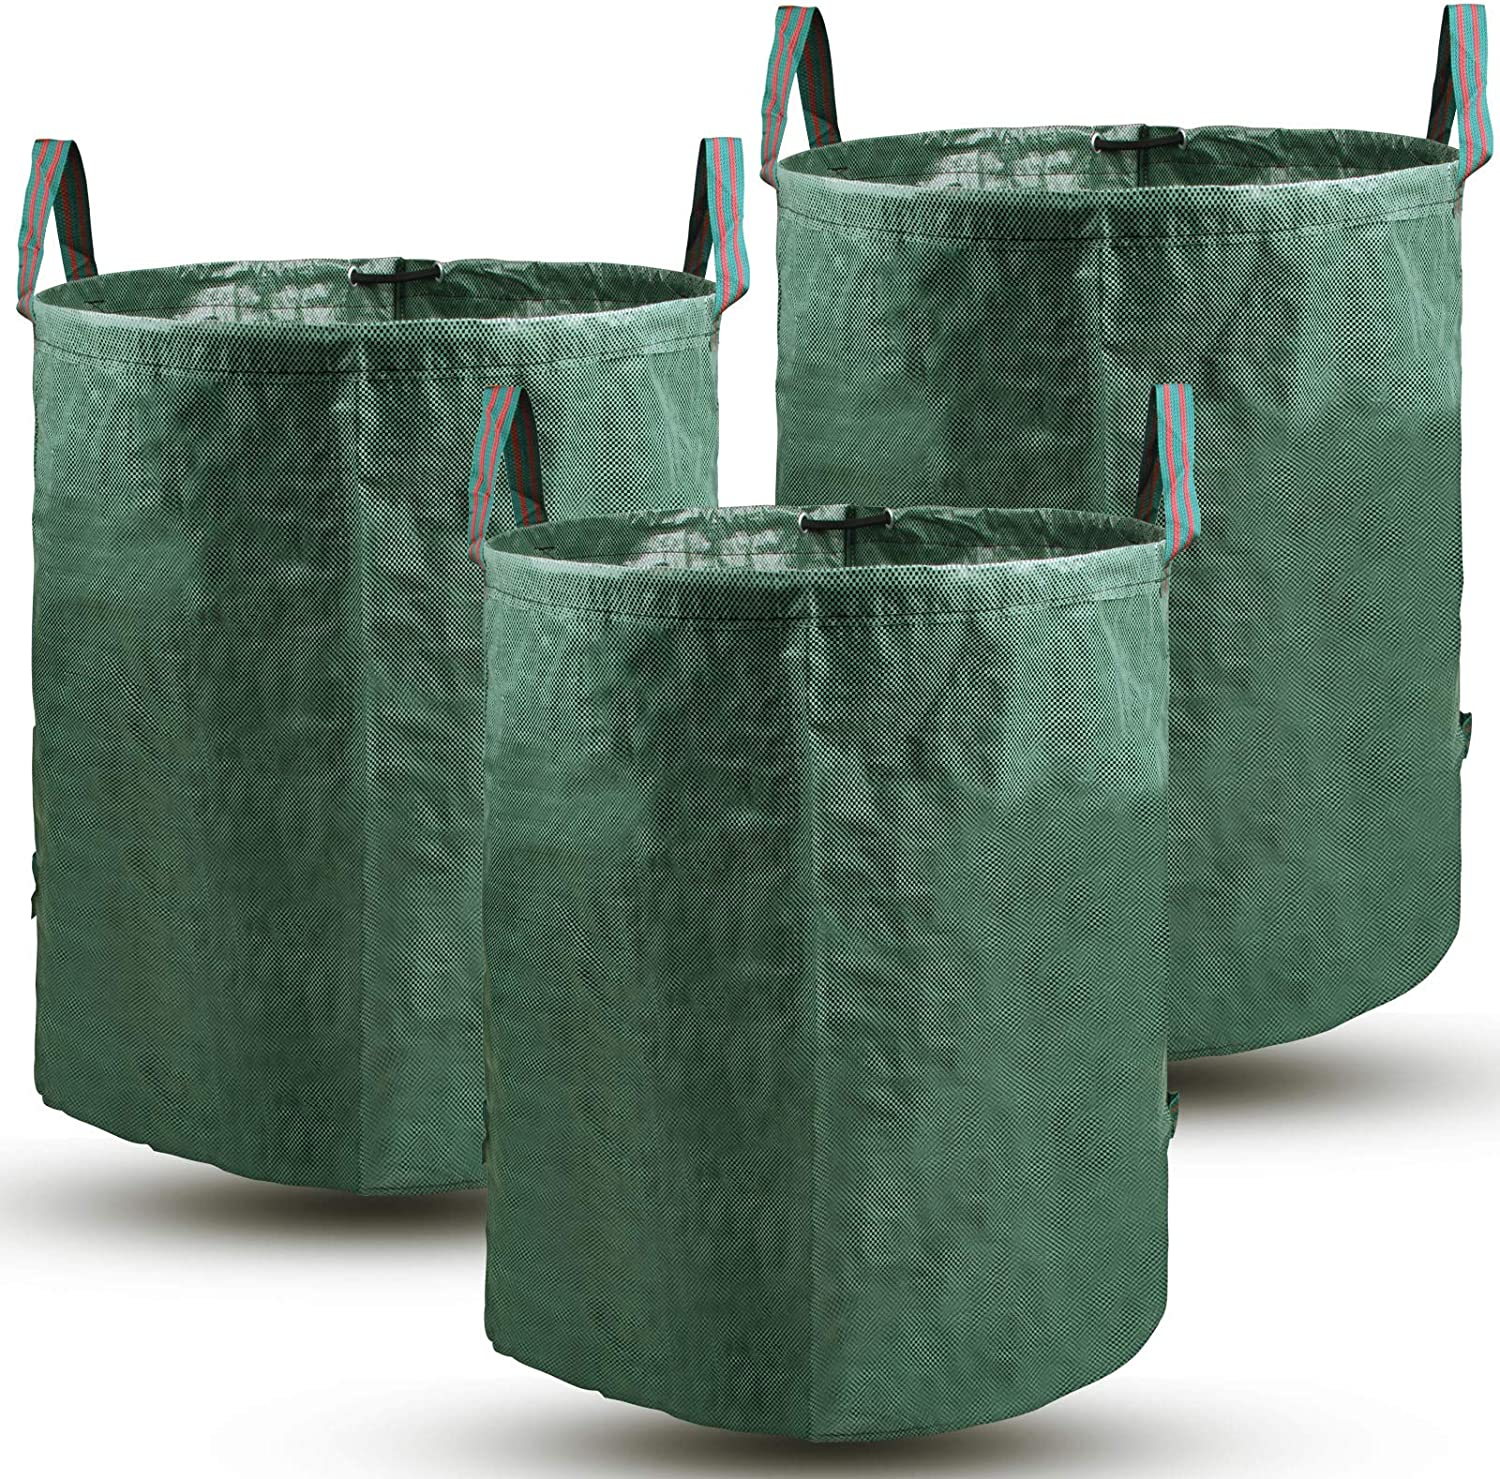 JSHANMEI 72 Los Angeles Mall Gallons Lawn Yard Waste Garden Home Finally popular brand Bags – Wast